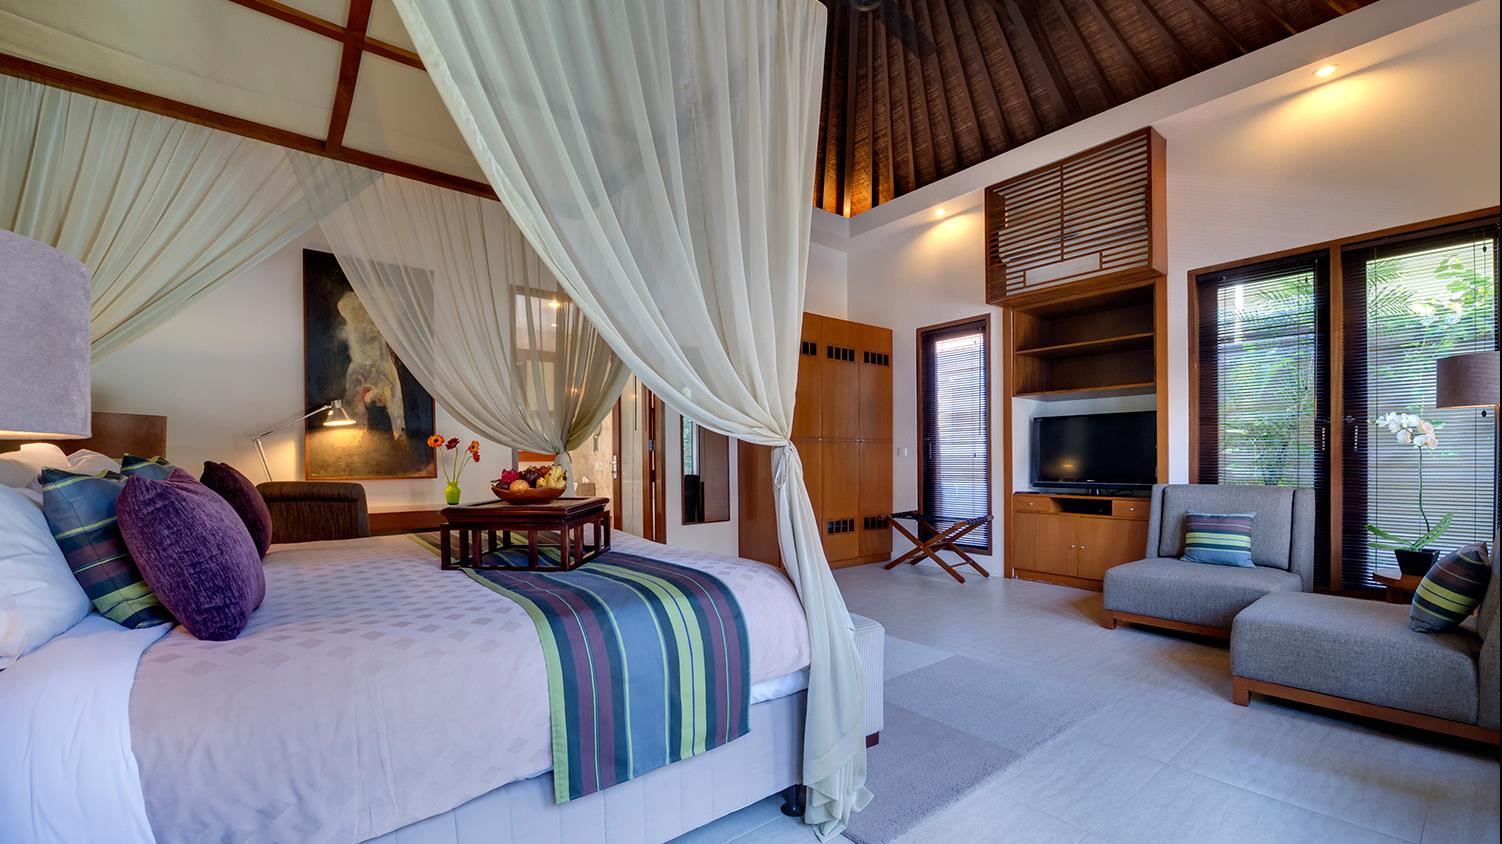 Bedroom with TV - Lakshmi Villas - Seminyak, Bali